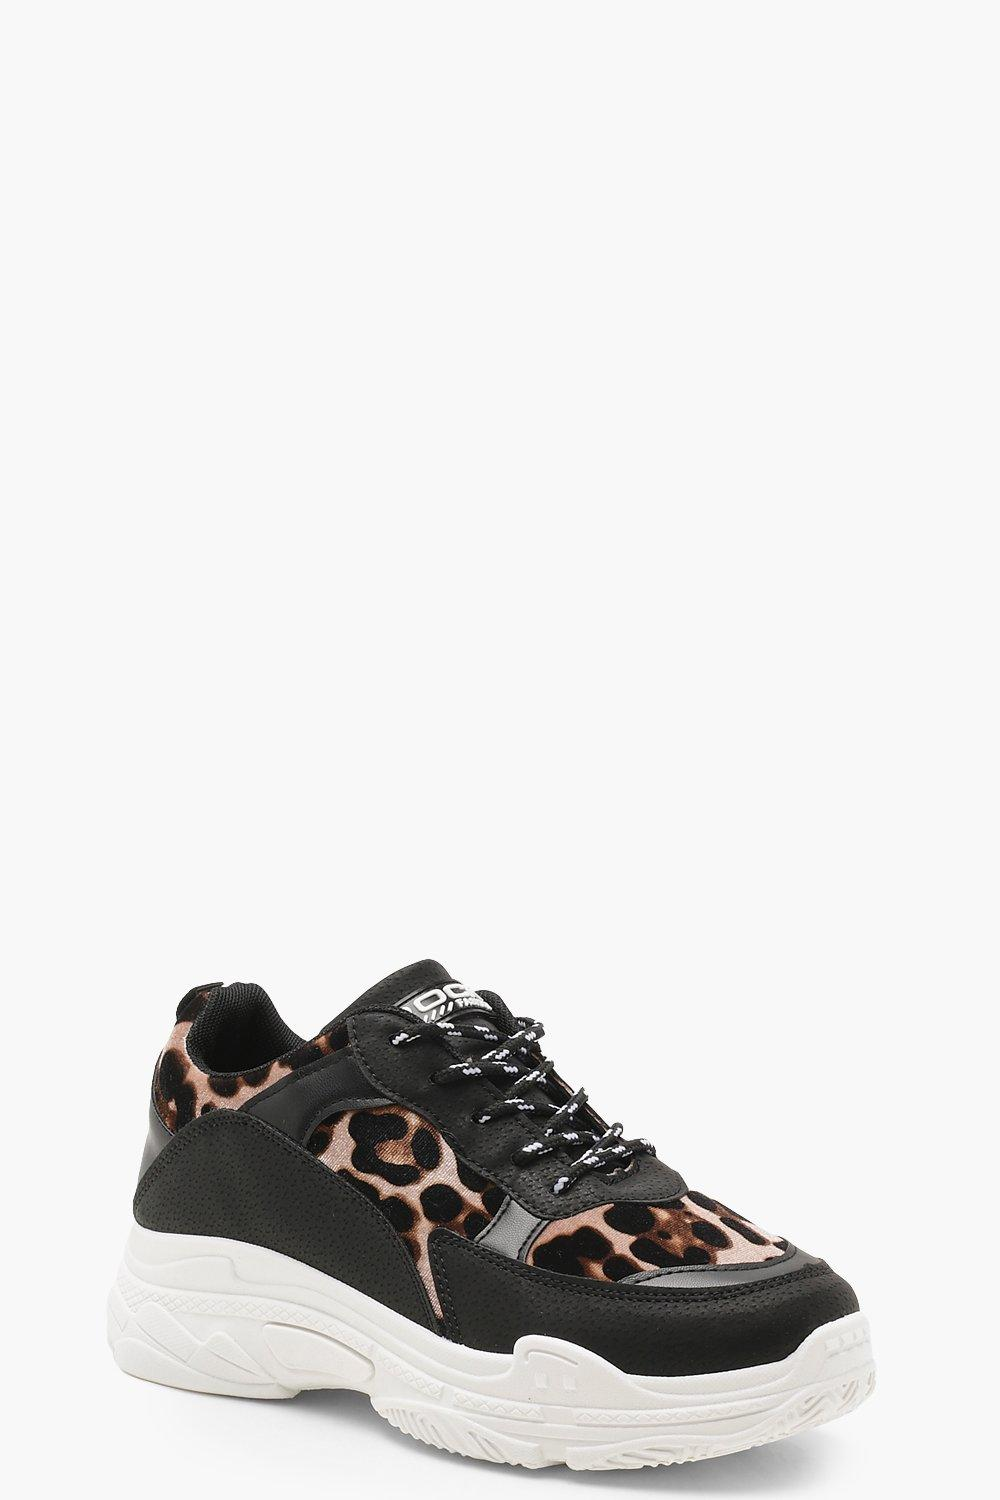 6872a41450258 Womens Leopard Chunky Sole Trainers. Hover to zoom